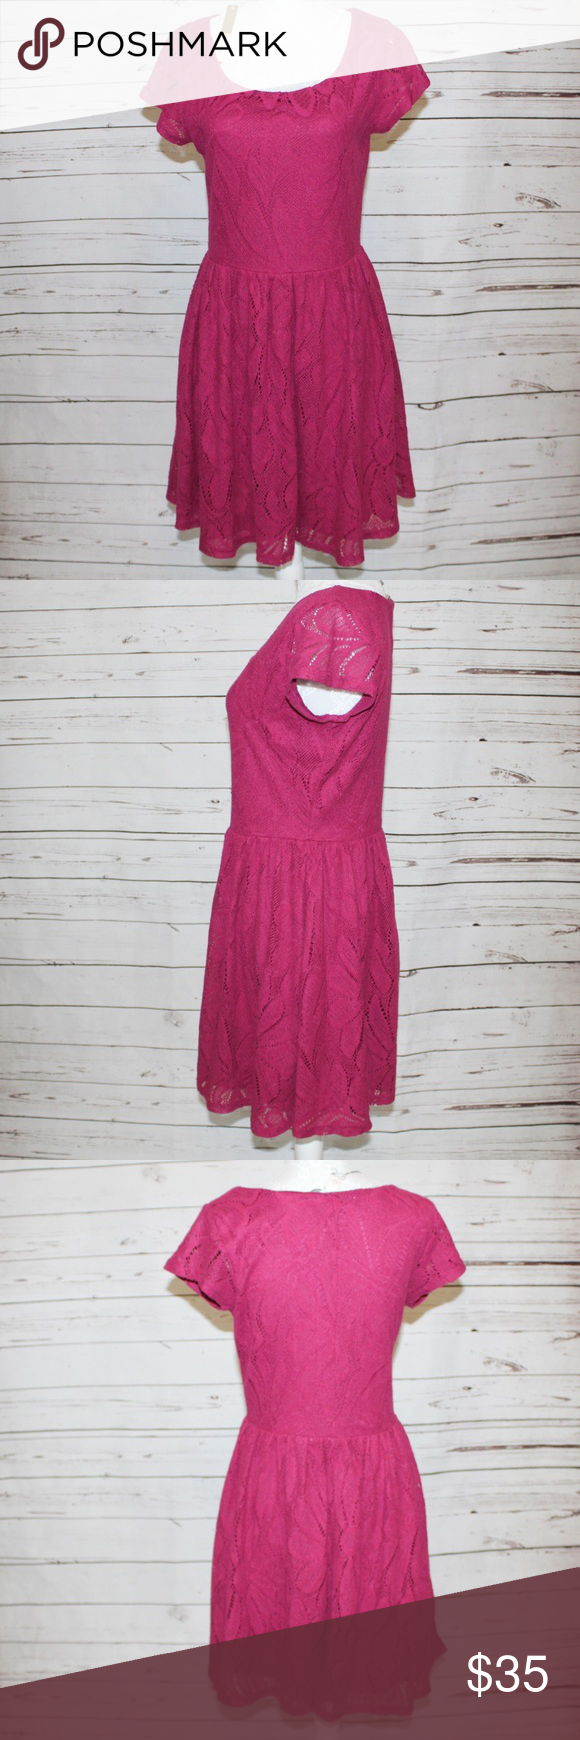 Lauren Conrad Lace Fit and Flare Dress NWT NWT